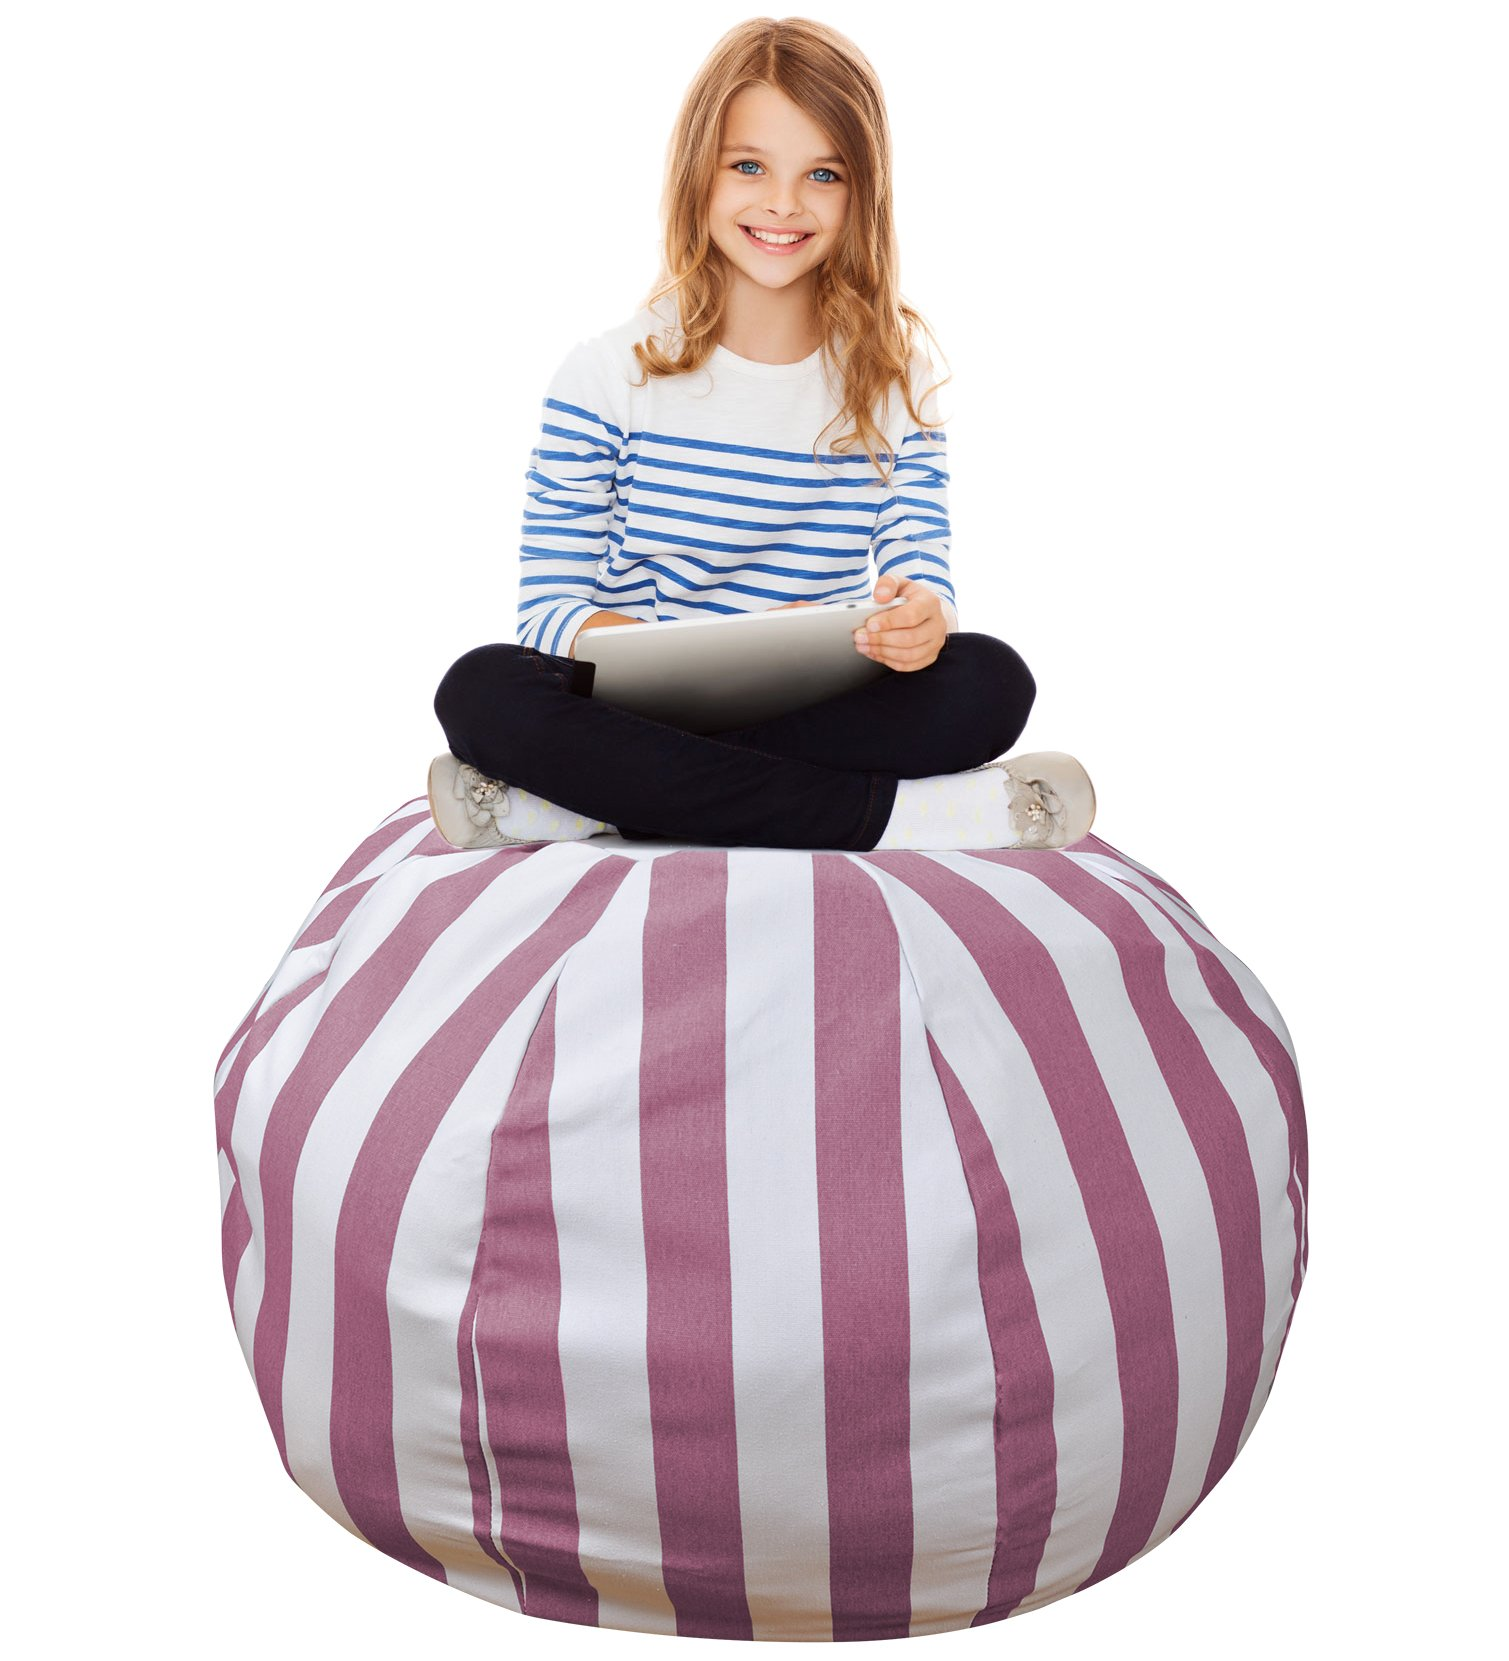 Stuffed Animal Storage Bean Bag –Extra Large Organization Sack Chair- Premium Quality Cotton Canvas- Easy Solution for Extra Toys / Blankets / Covers / Towels / Clothes -38 inches, Purple Striped by IBBM I WILL BE YOUR BEST MEMORY